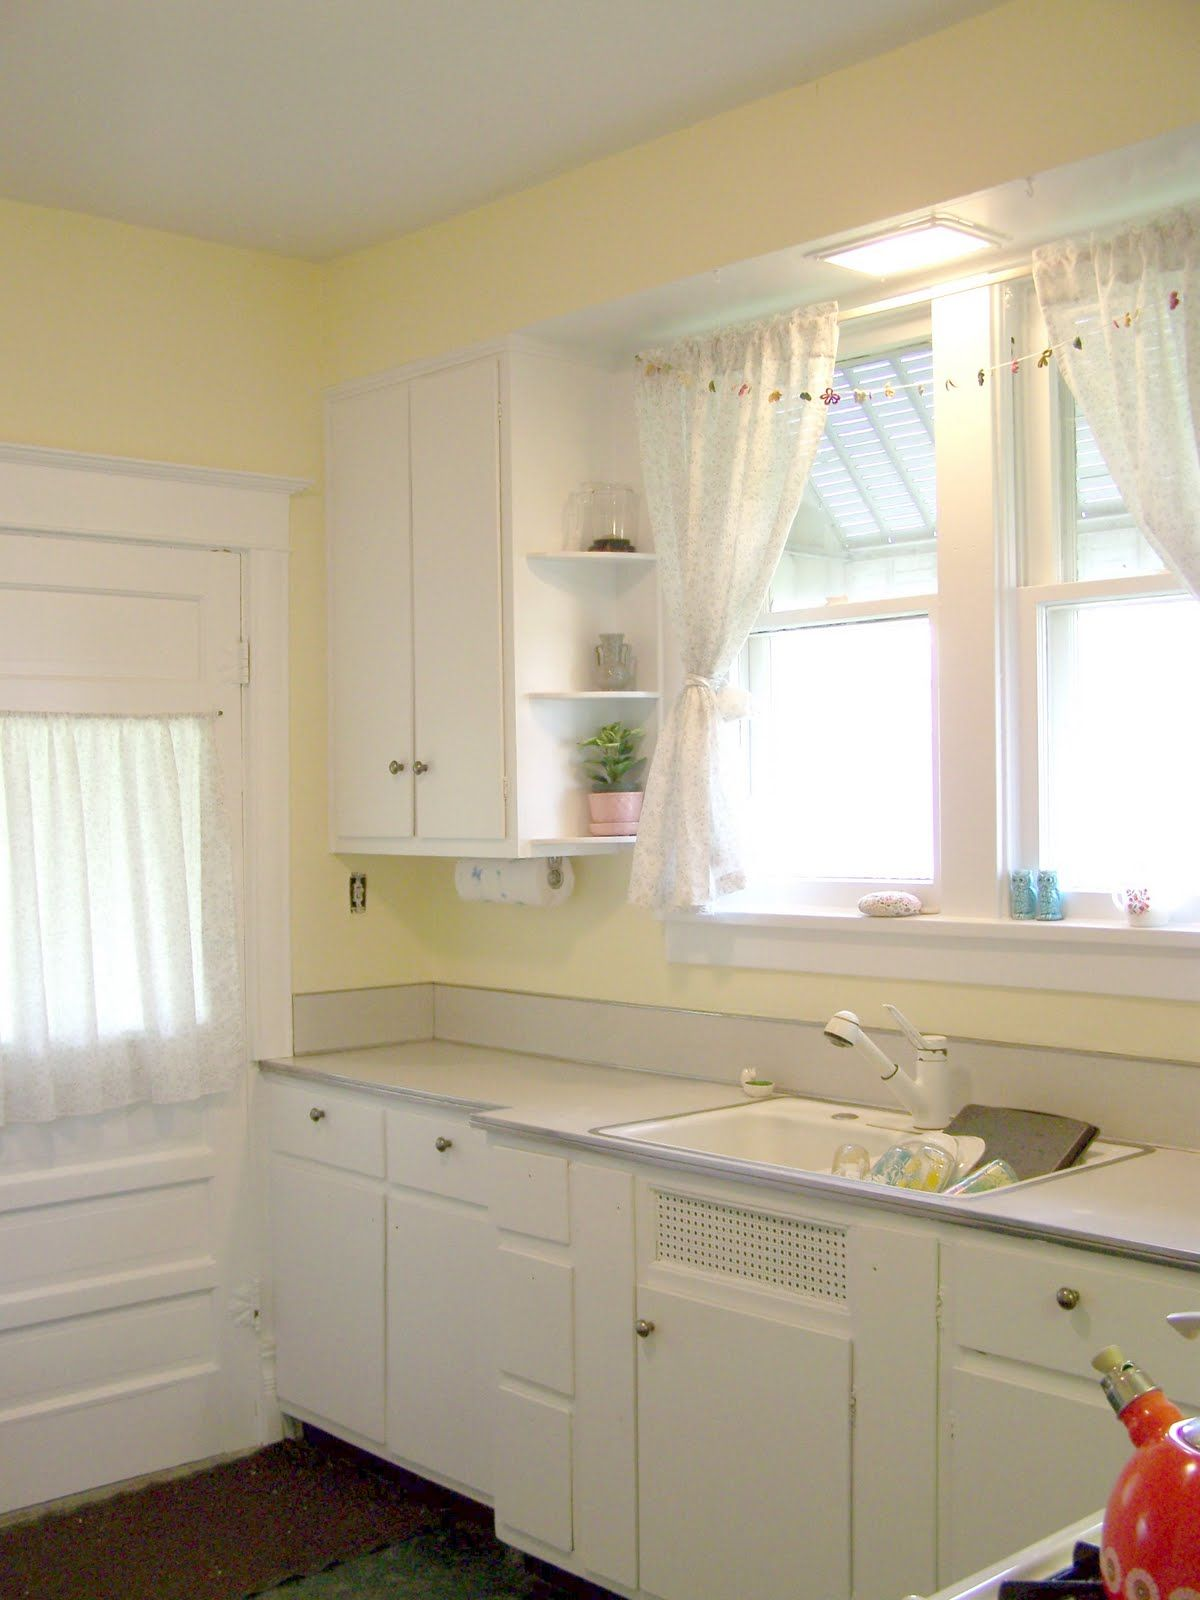 Kitchen Design Yellow Cabinets White And Yellow Kitchen For Our House At The Lake